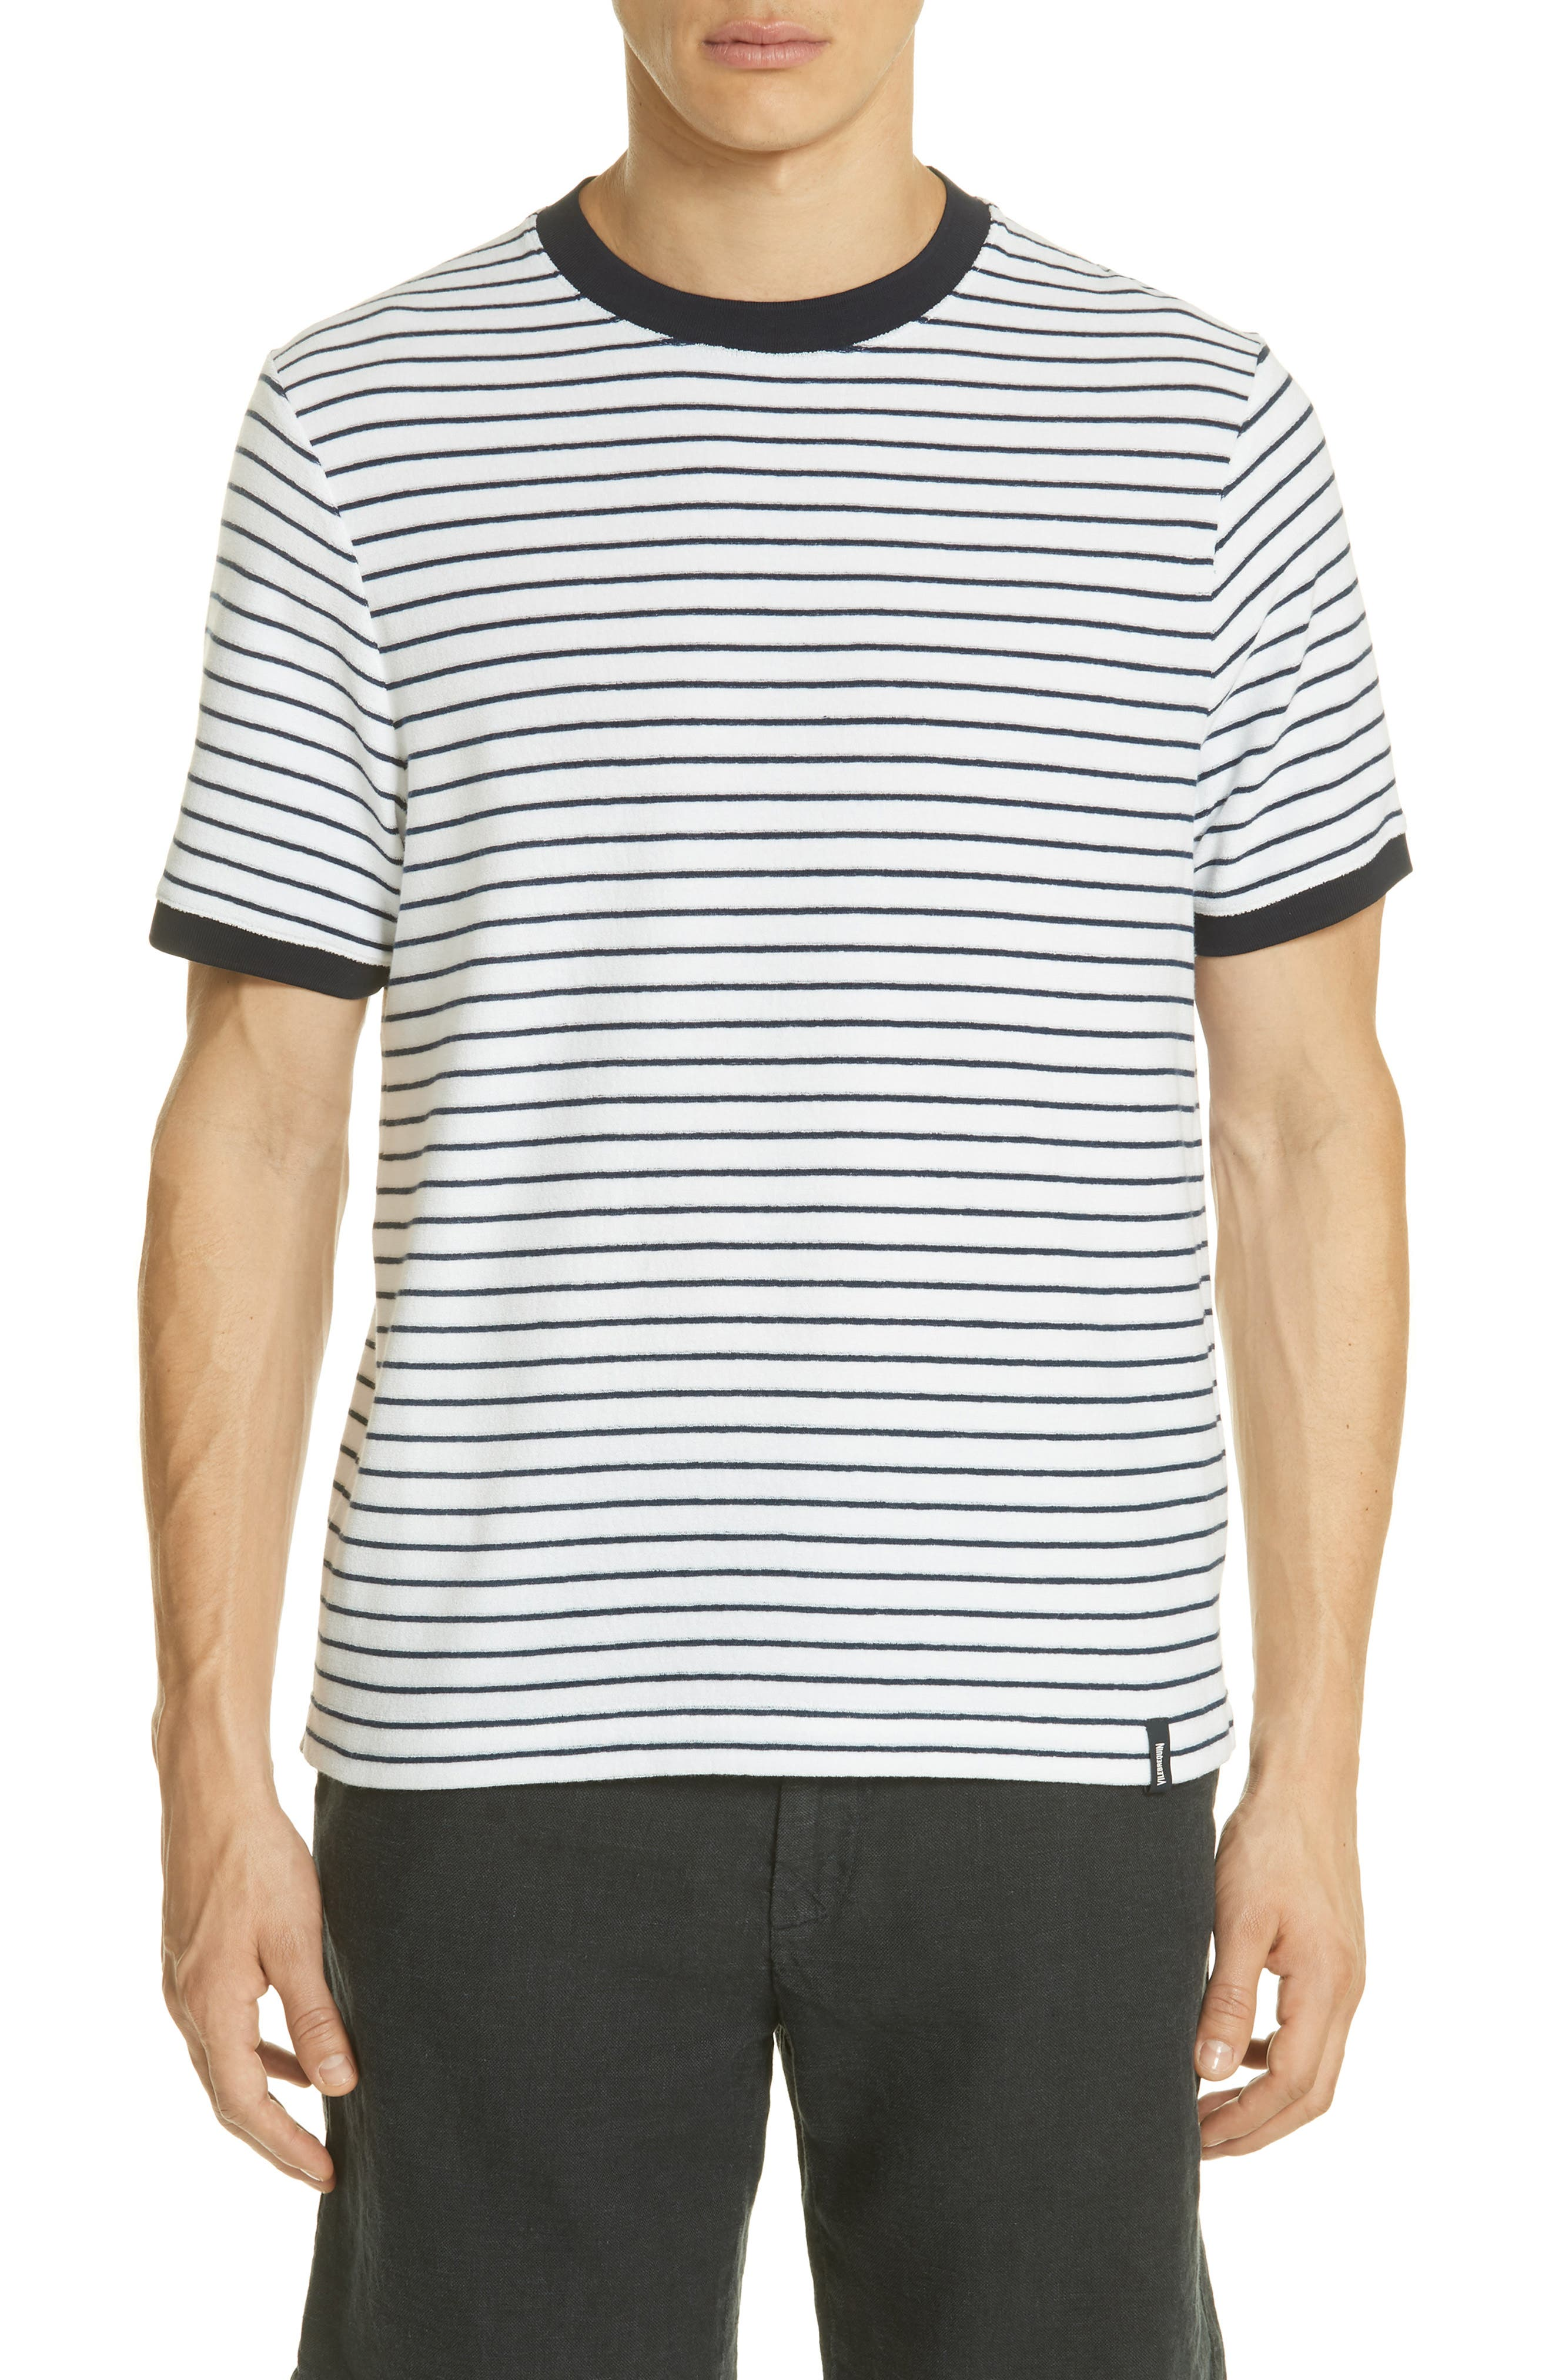 Alternate Image 1 Selected - Vilebrequin Stripe Terry T-Shirt